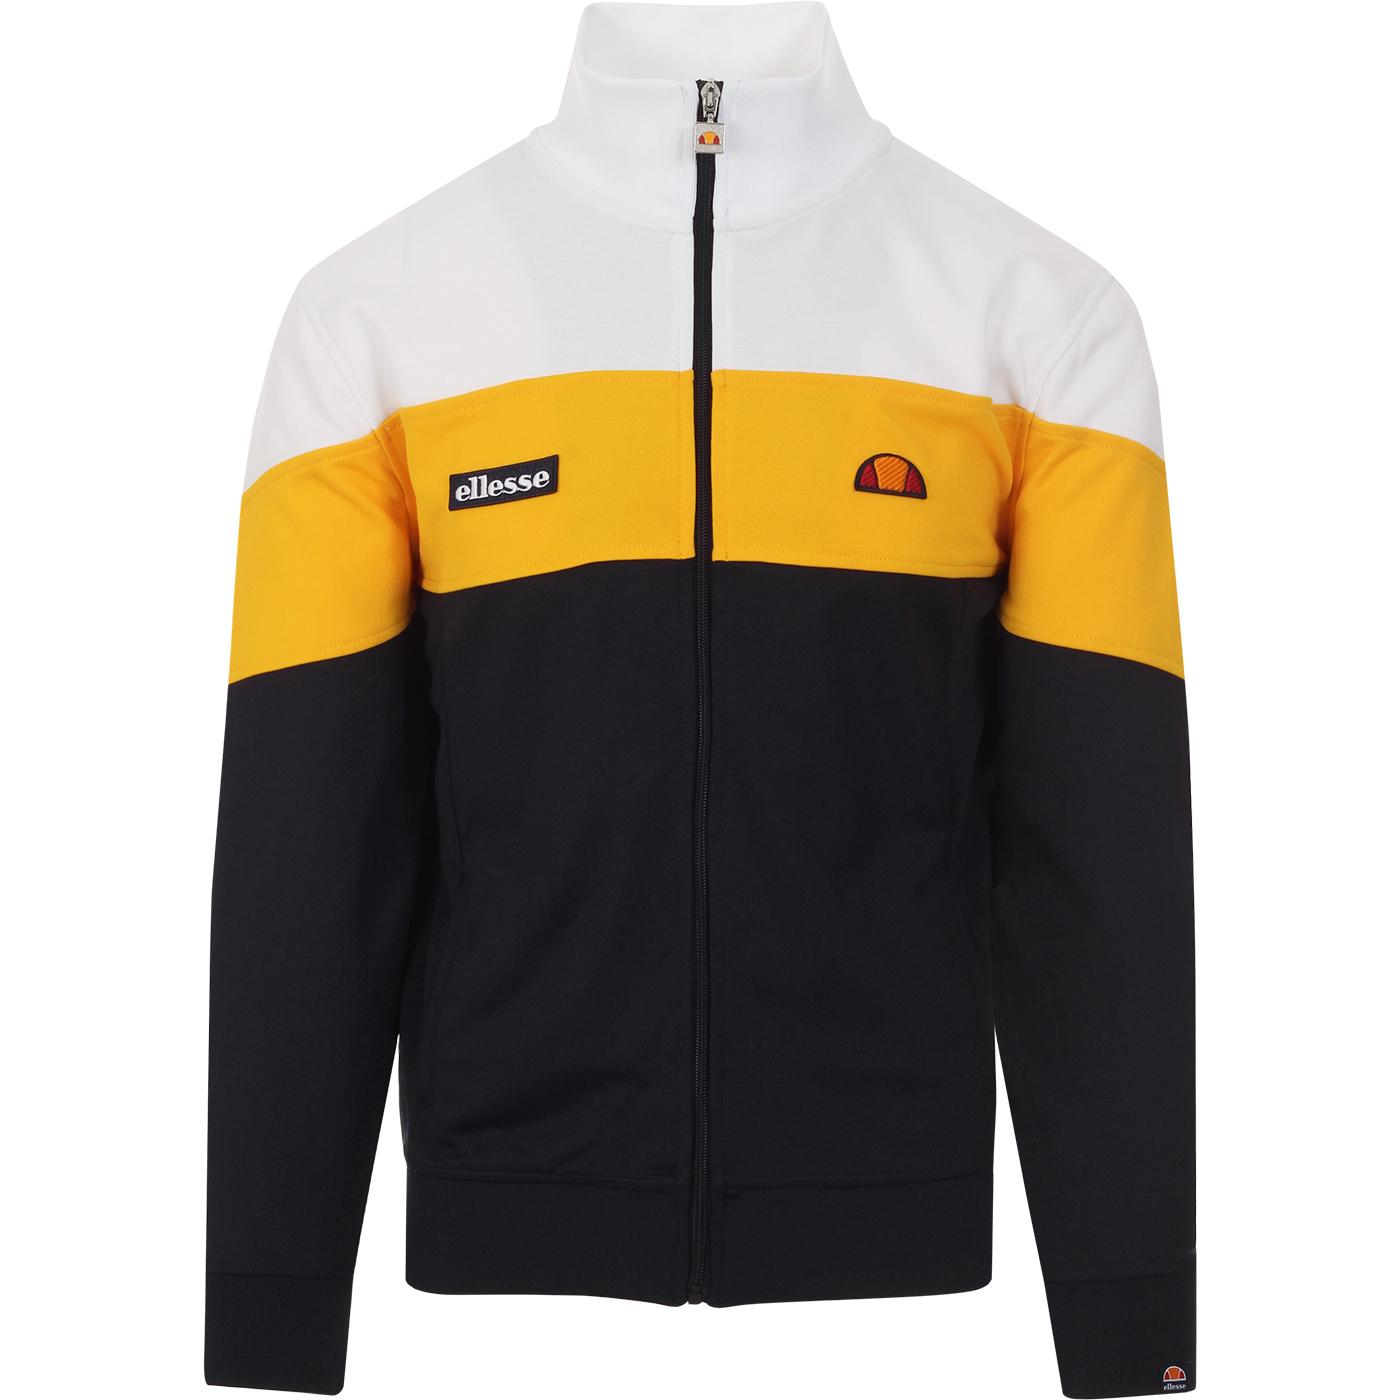 Caprini ELLESSE Retro Colour Block Track Top (N/Y)